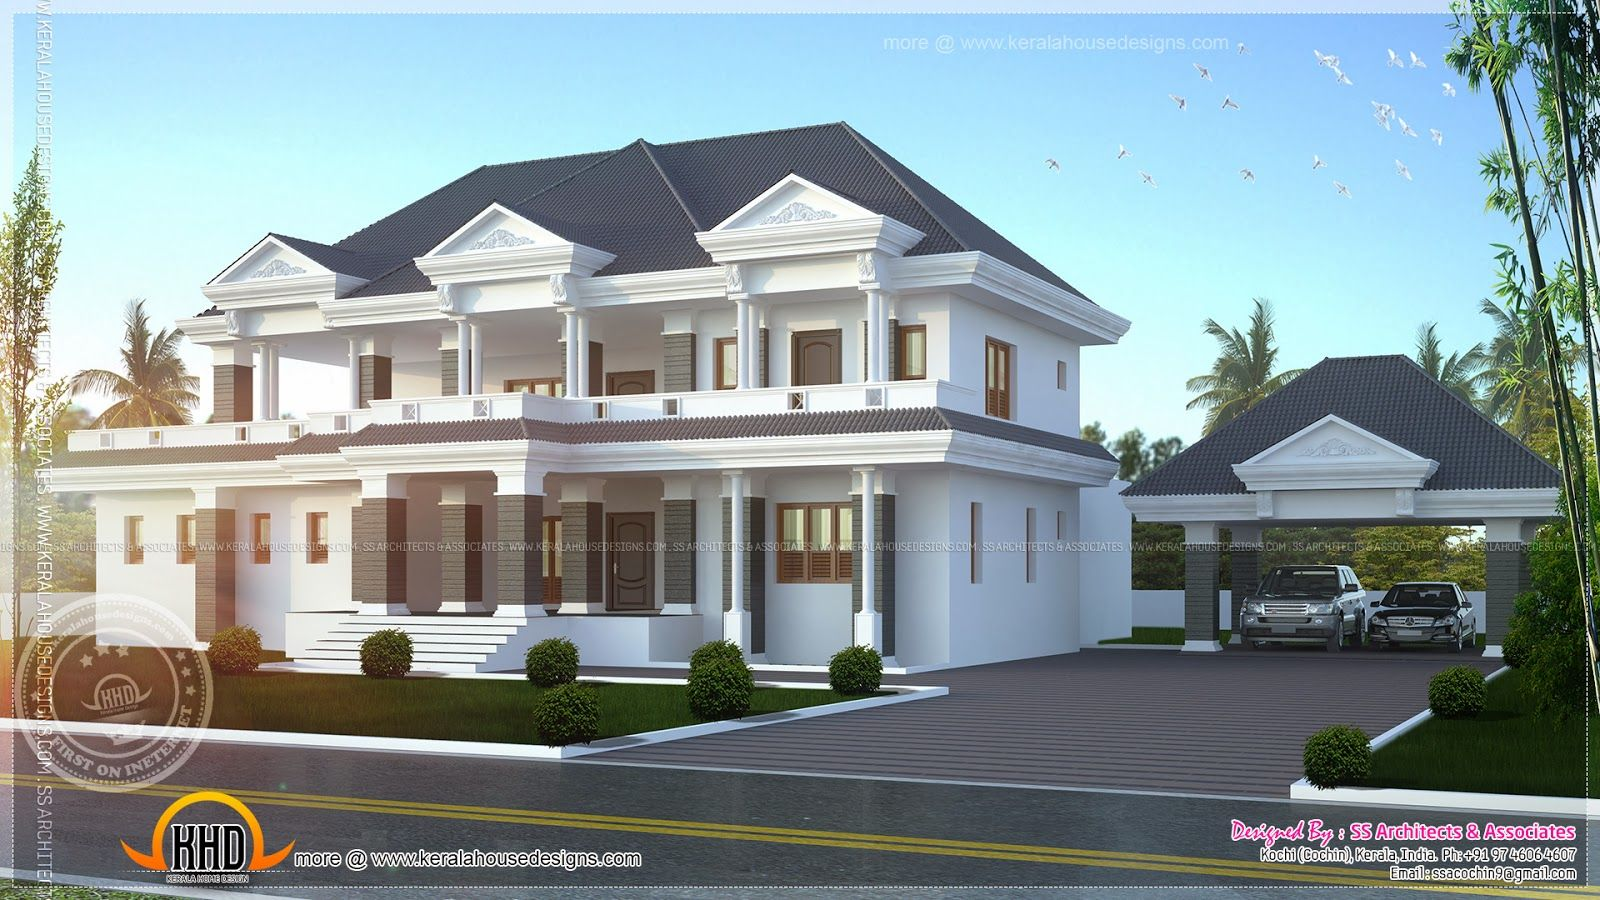 Luxury house plans posh luxury home plan audisb luxury for House turret designs